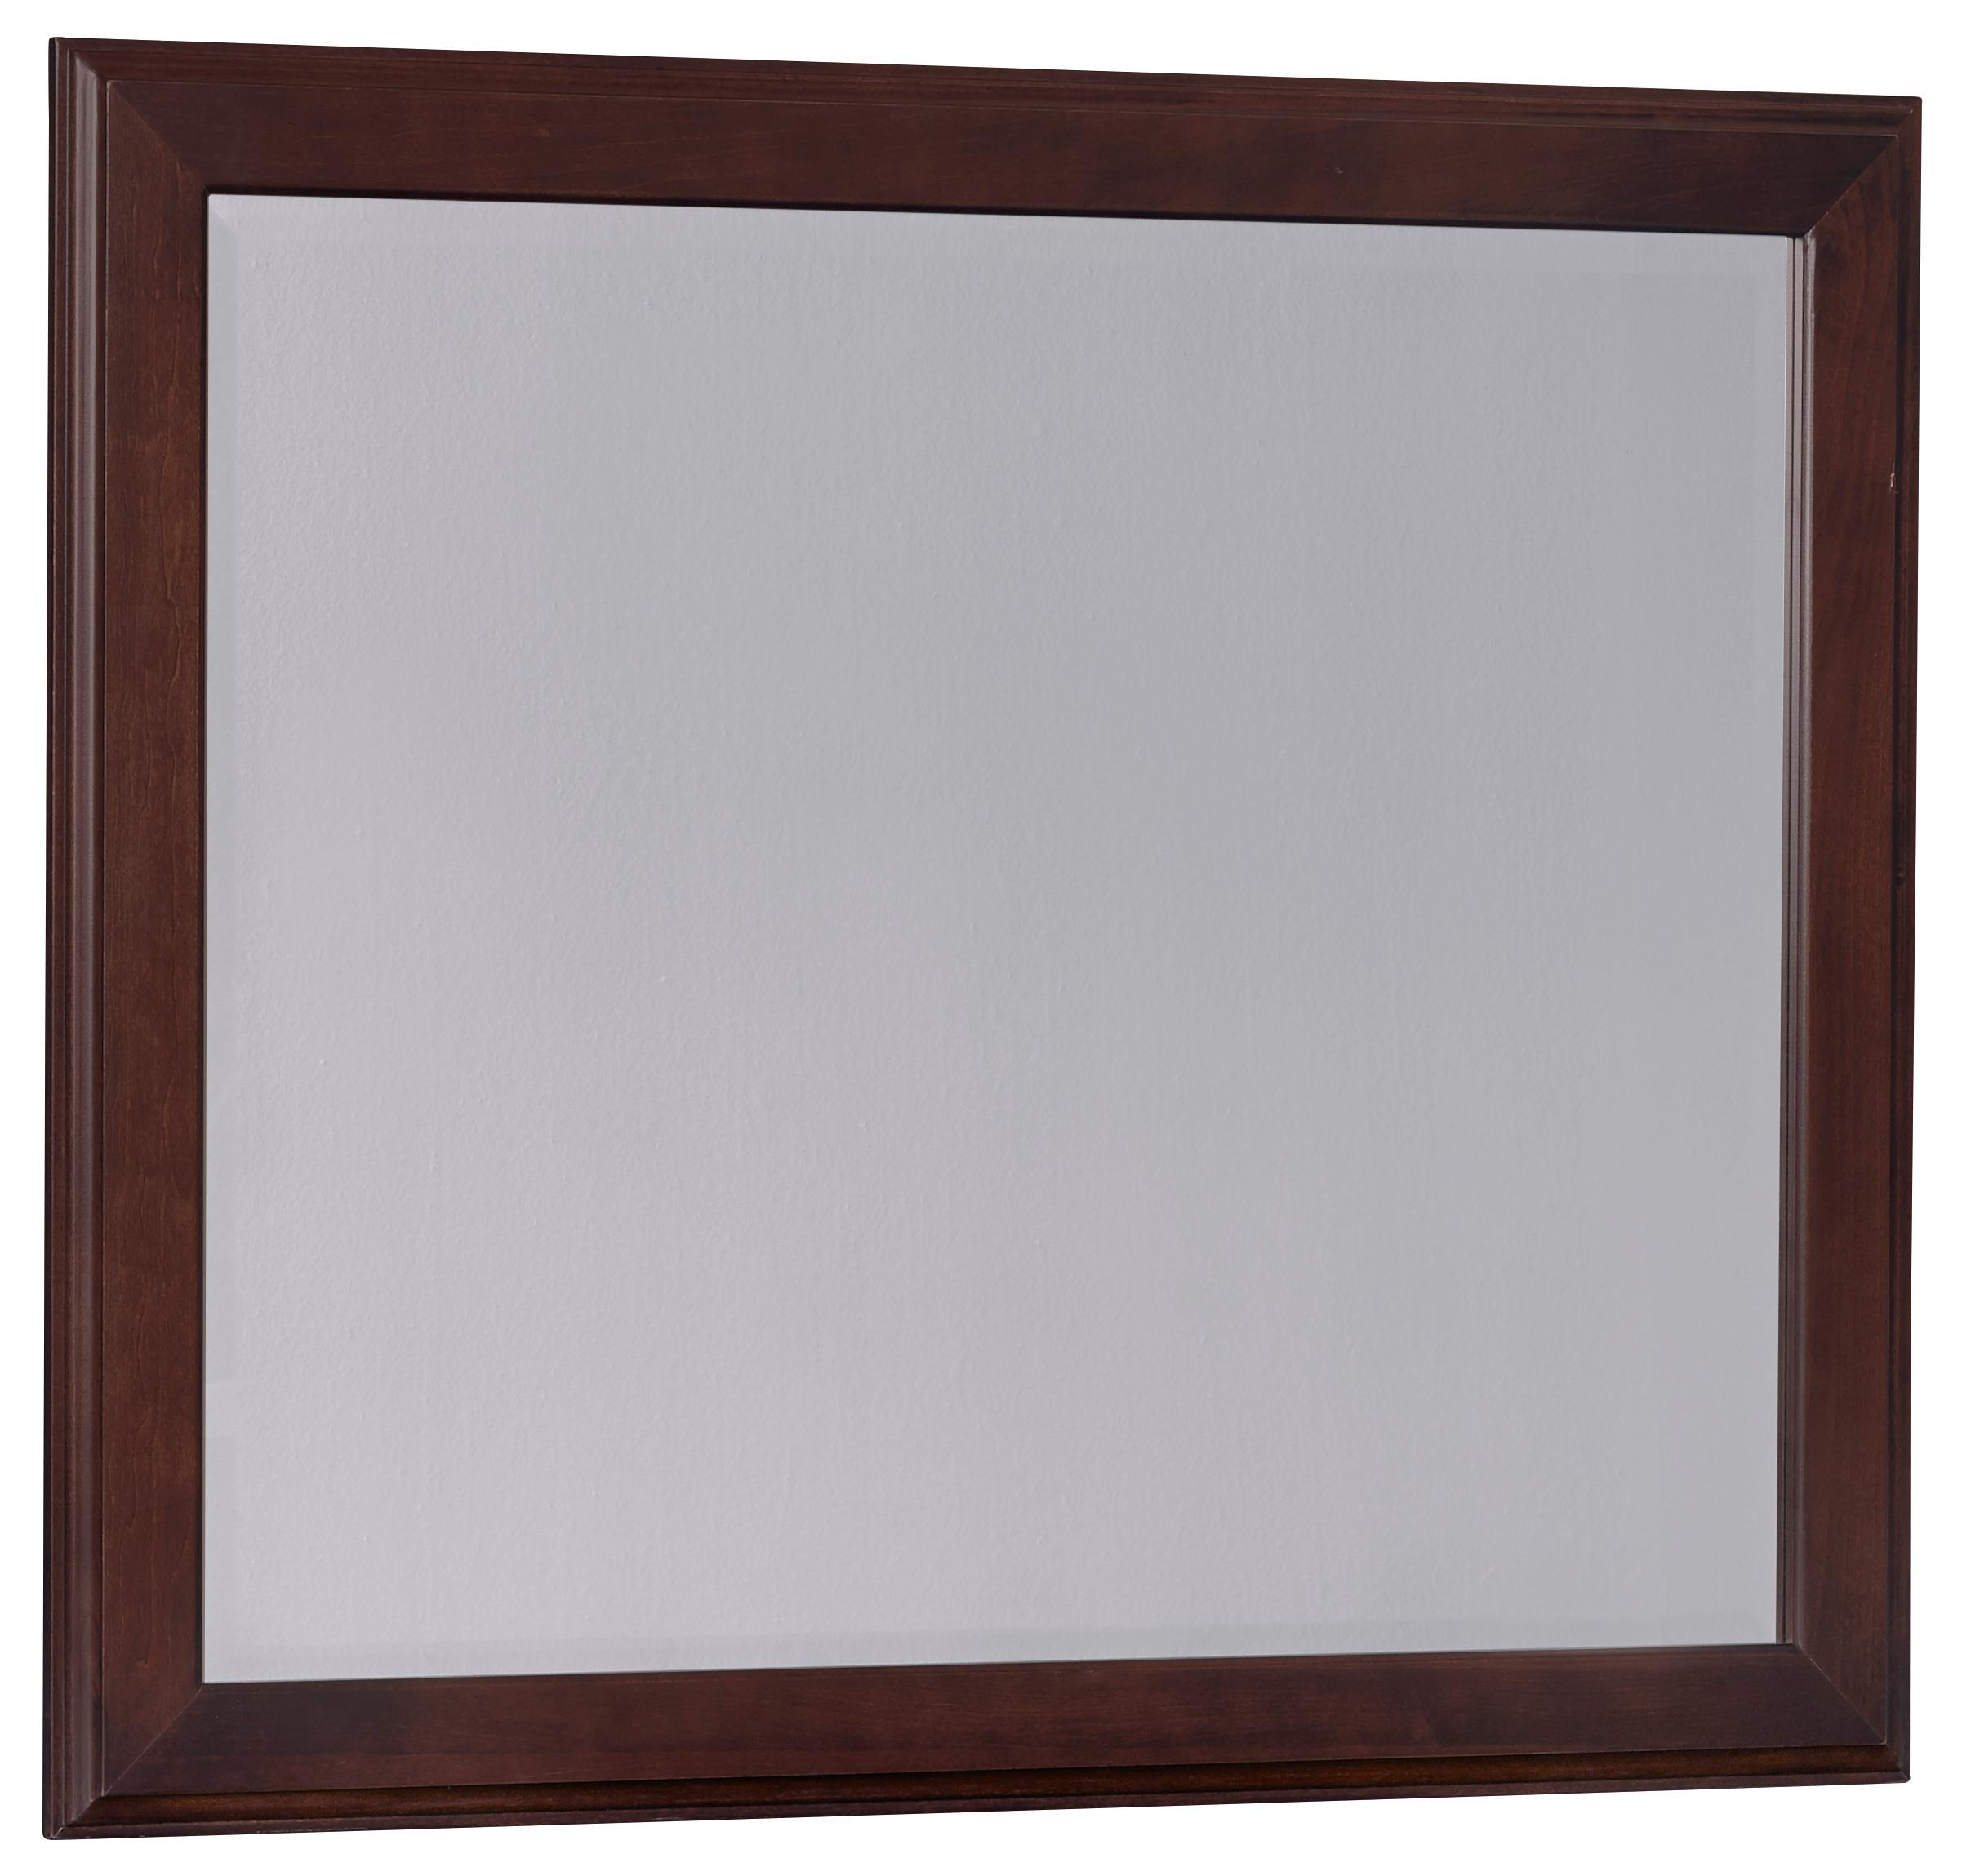 Vaughan Bassett Commentary Large Landscape Mirror - Item Number: 392-445